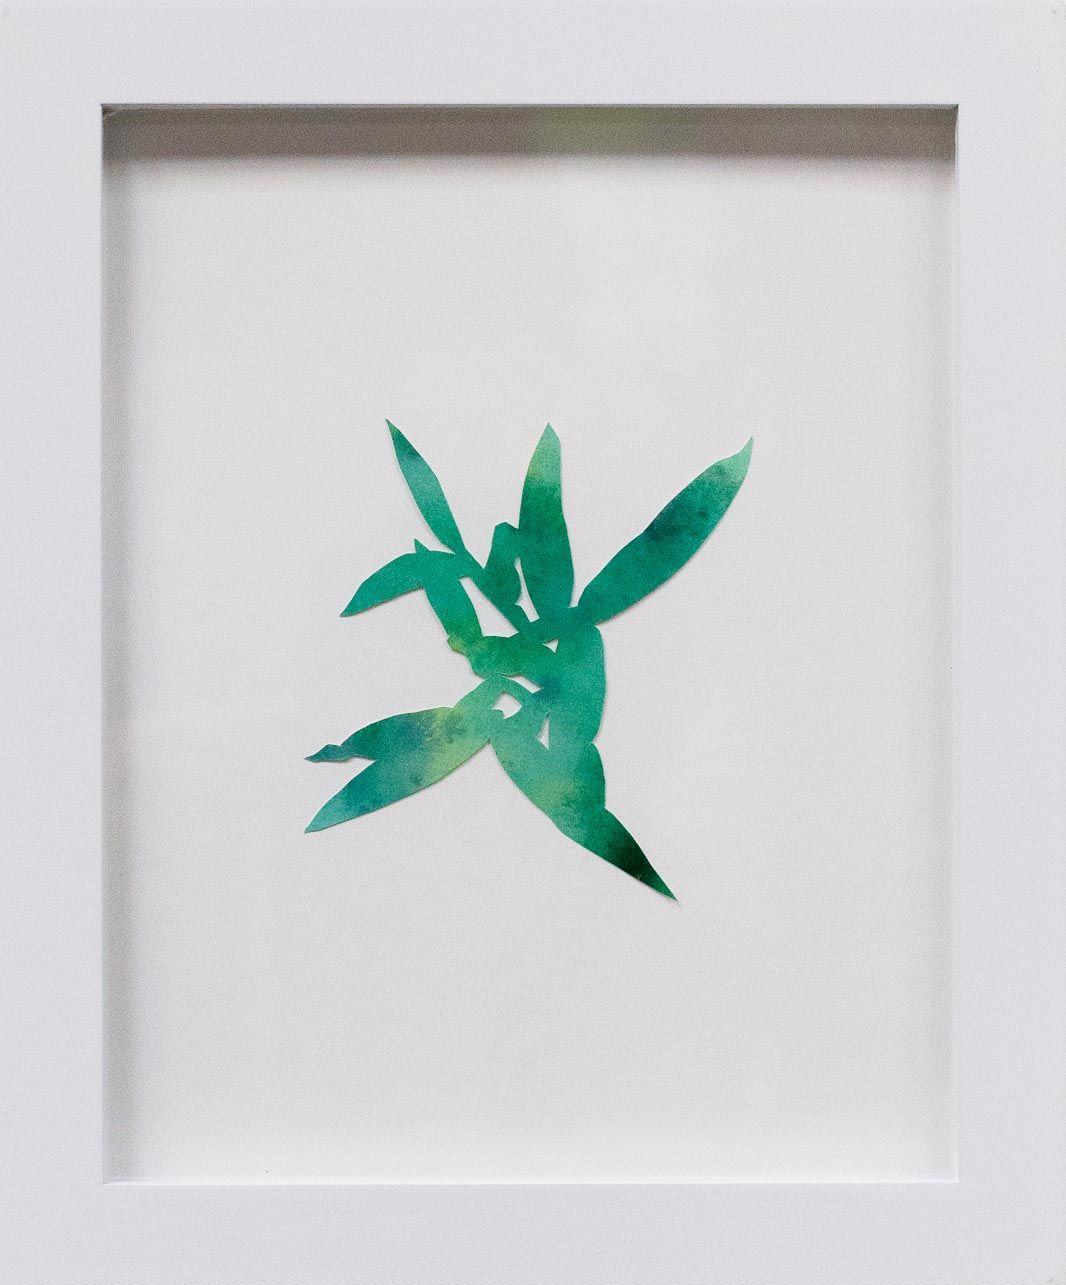 Hannah Cole  Crabgrass #6, 2018  watercolor on cut paper  Framed: 10h x 8w in 25.40h x 20.32w cm  HC_049